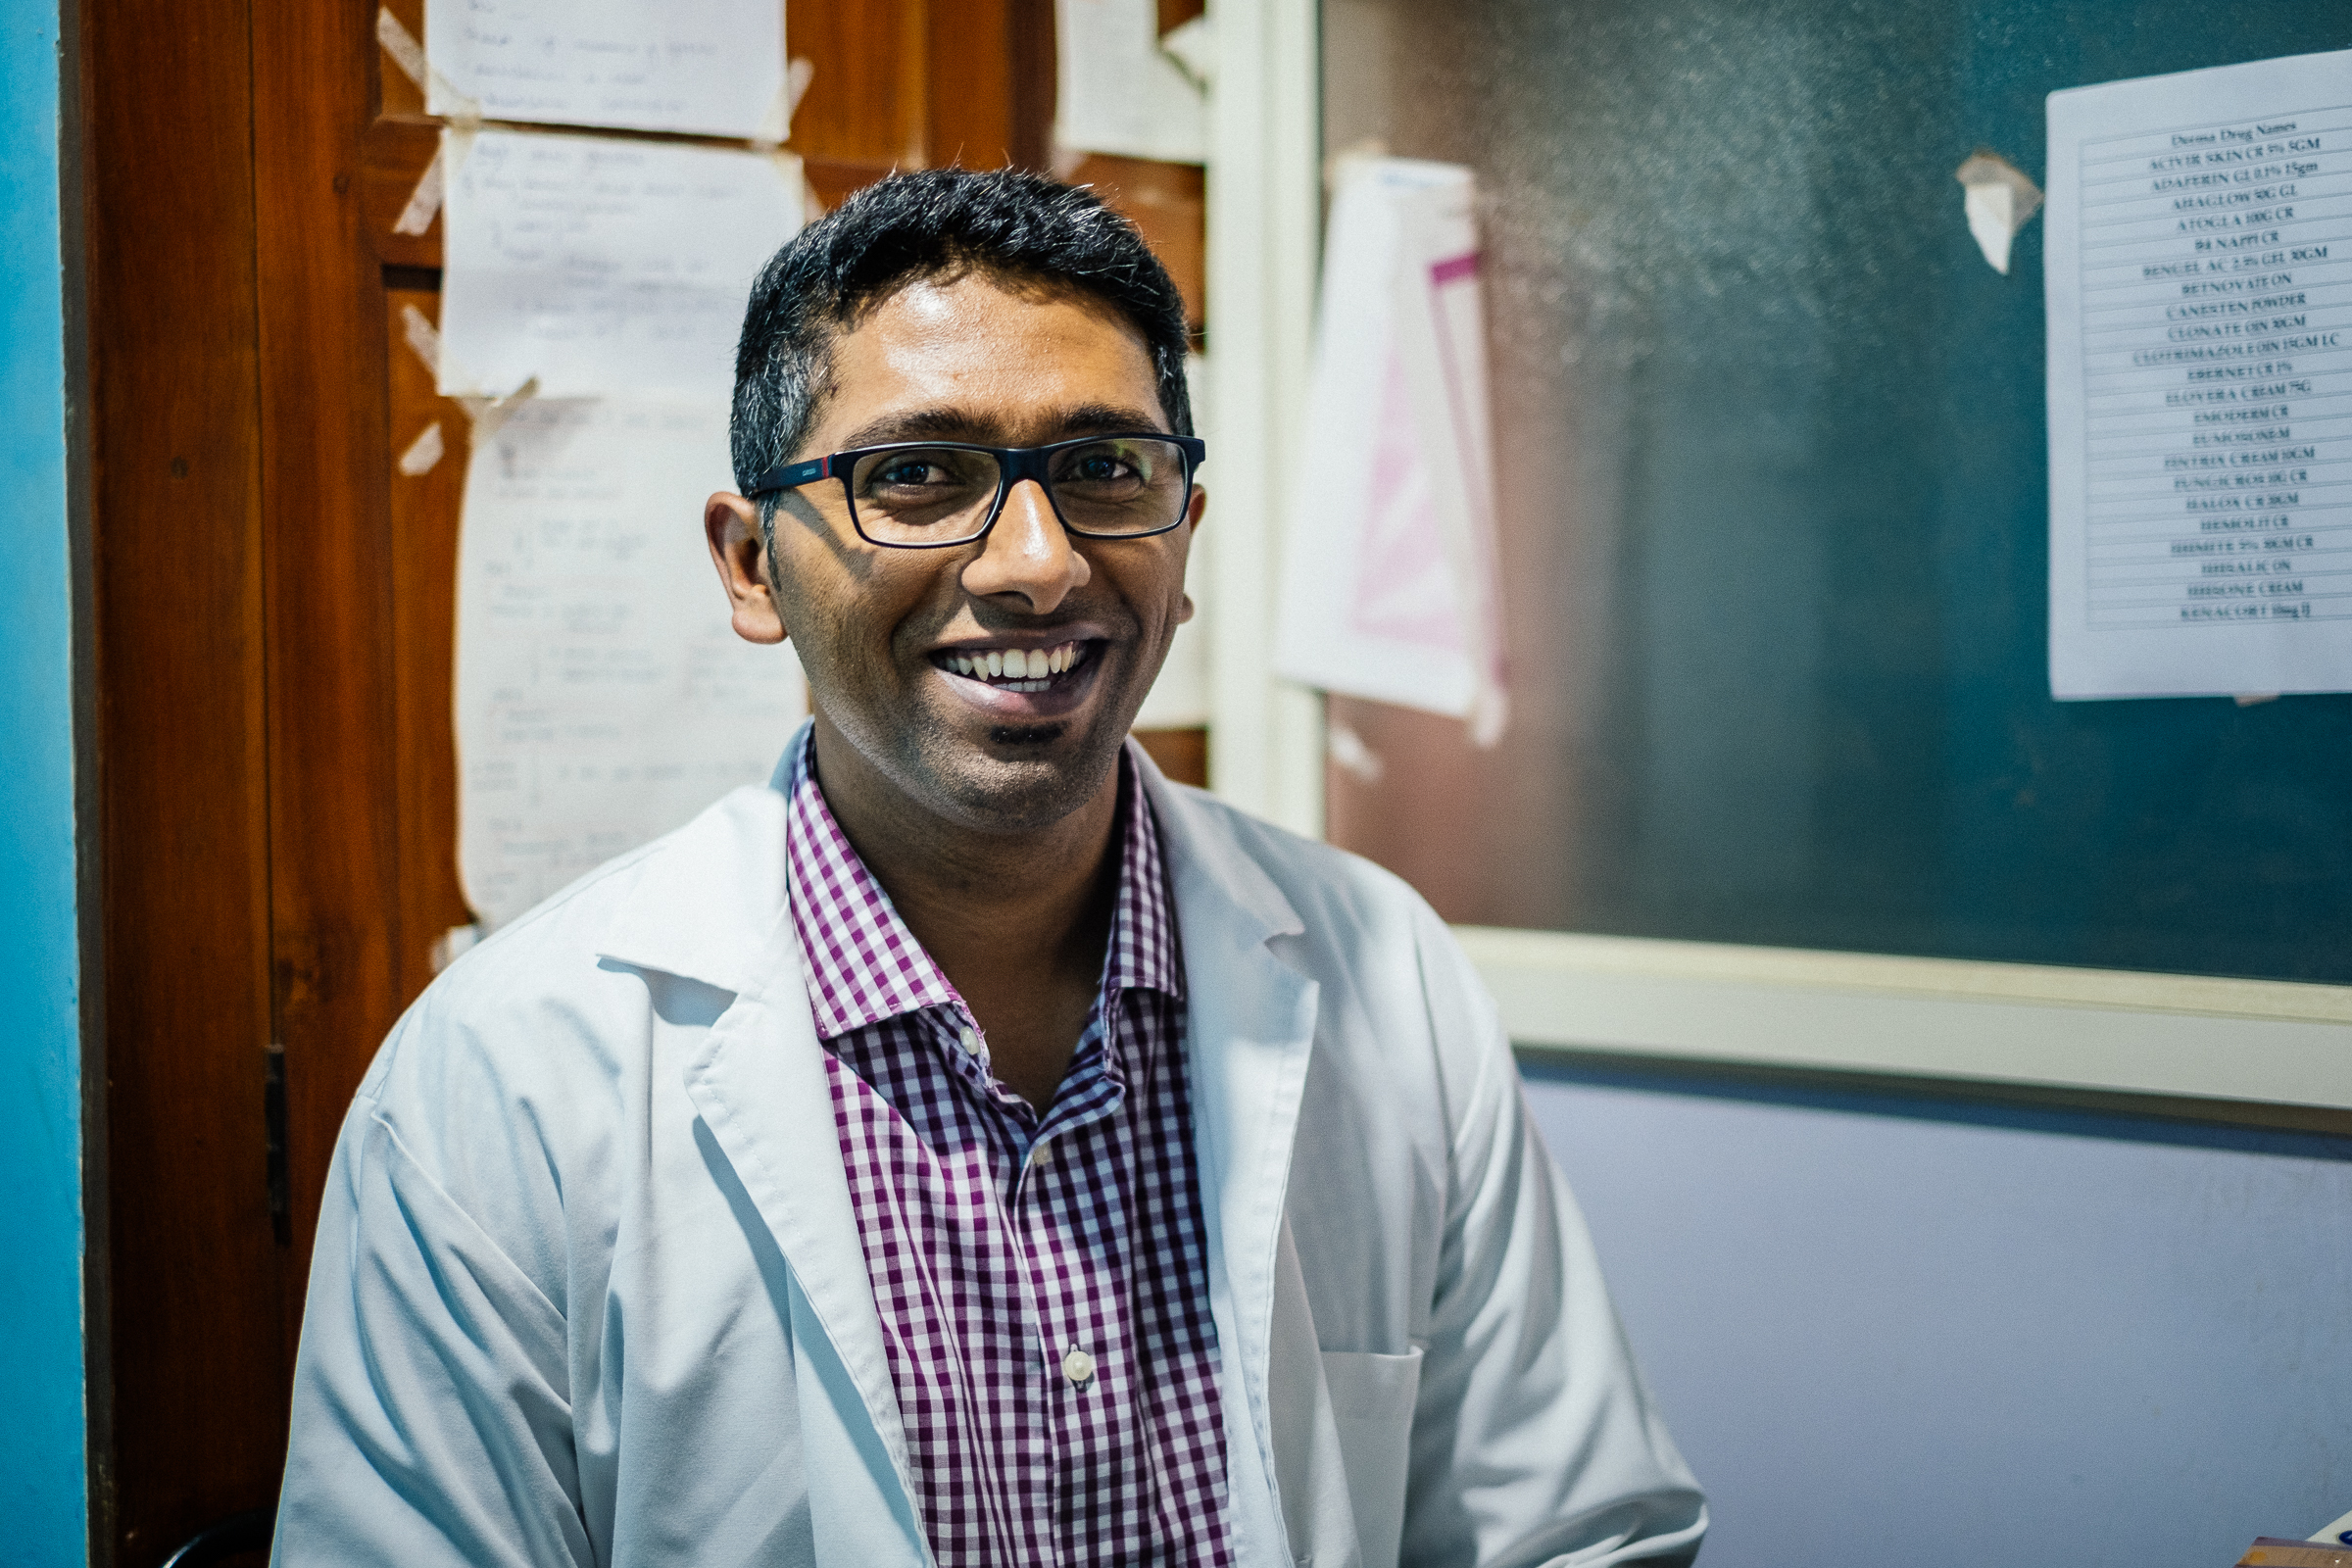 Highlights from our interview with Samar, a GP and family physician at multiple clinics across Bangalore.